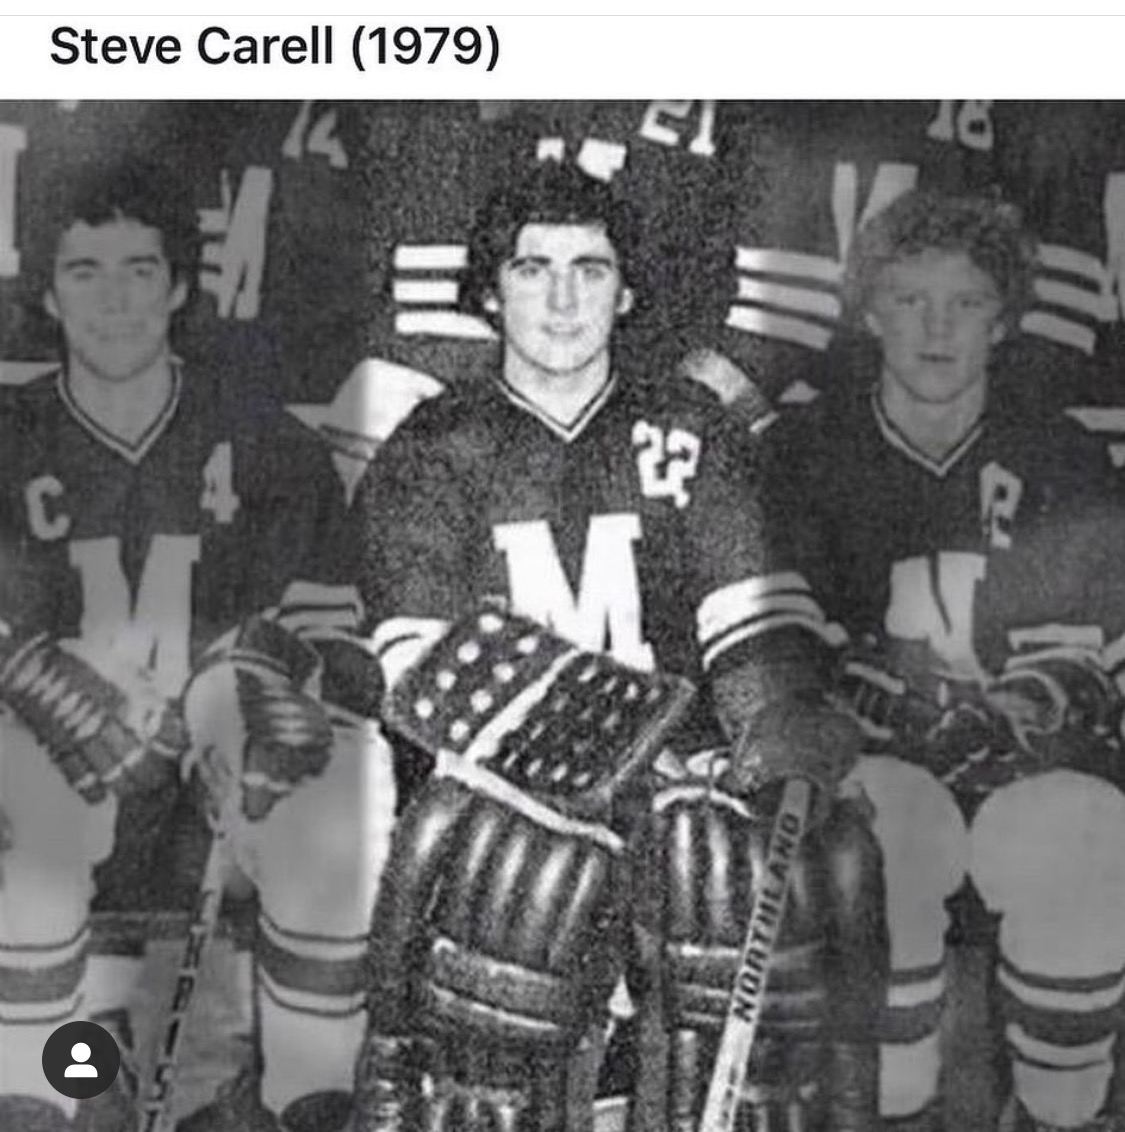 Steve Carell's 1979 Yearbook Hockey Team Photo Michael Scott The Office